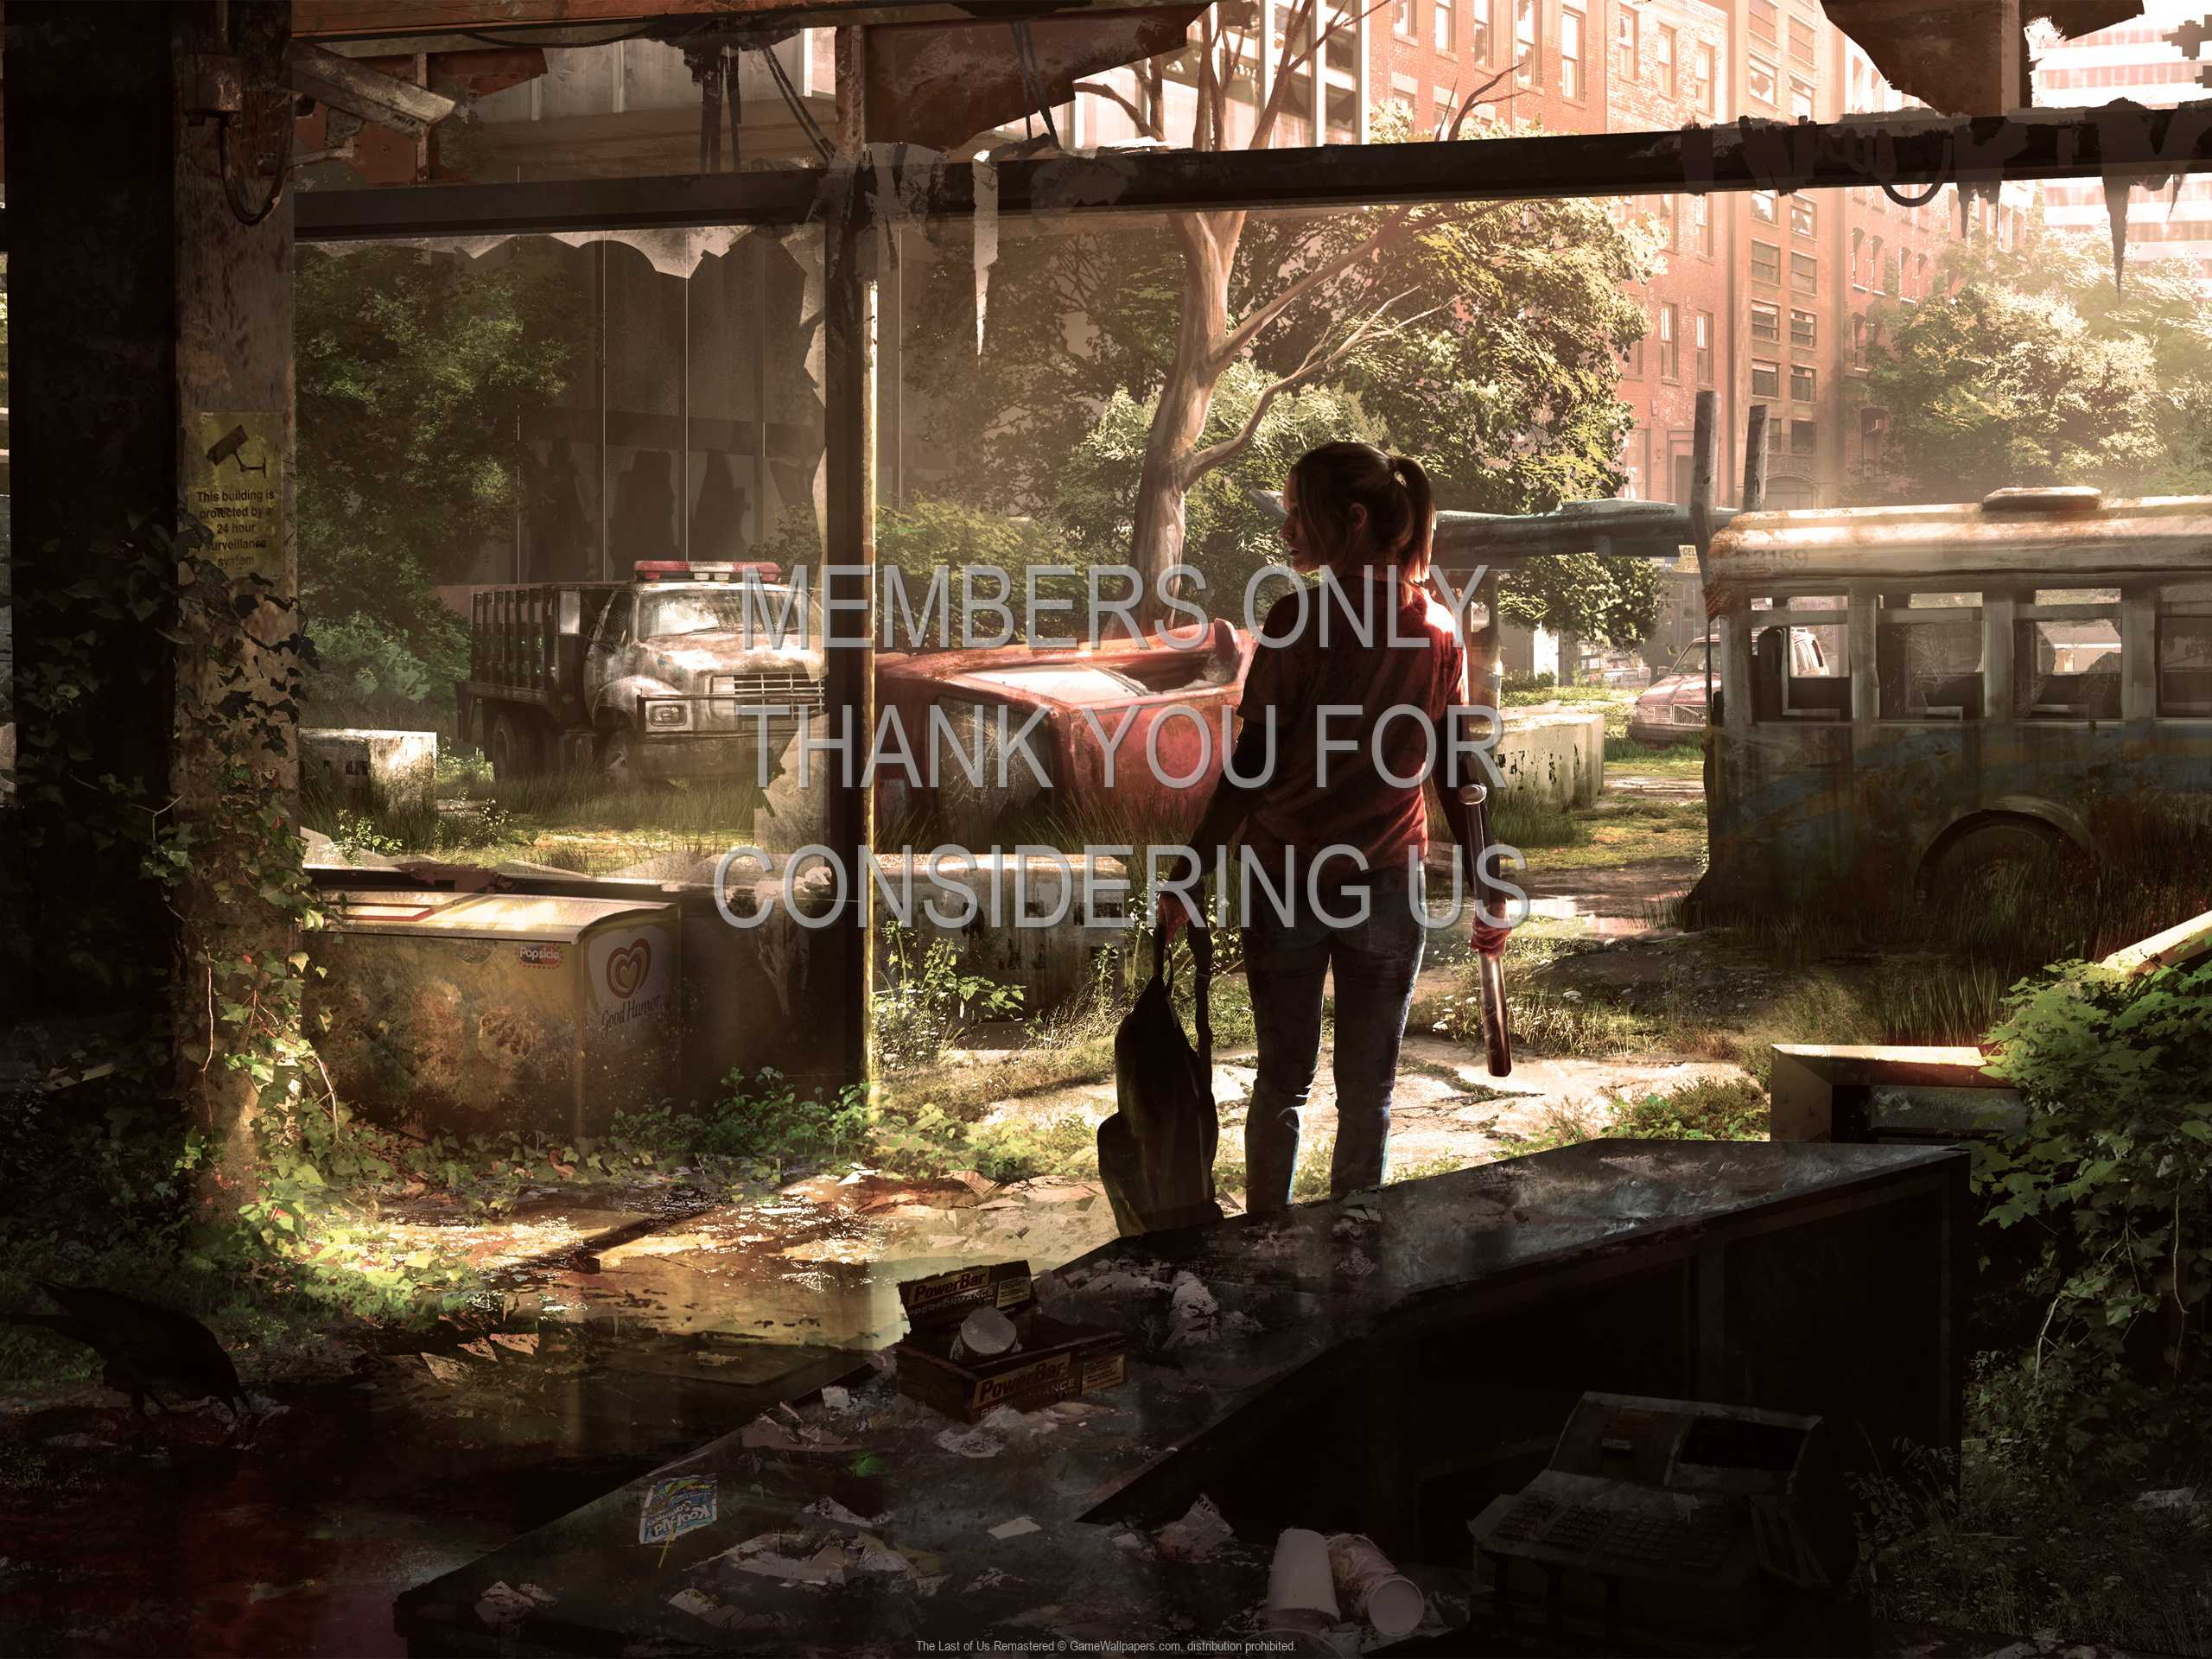 The Last of Us: Remastered 1080p Horizontal Mobile wallpaper or background 02